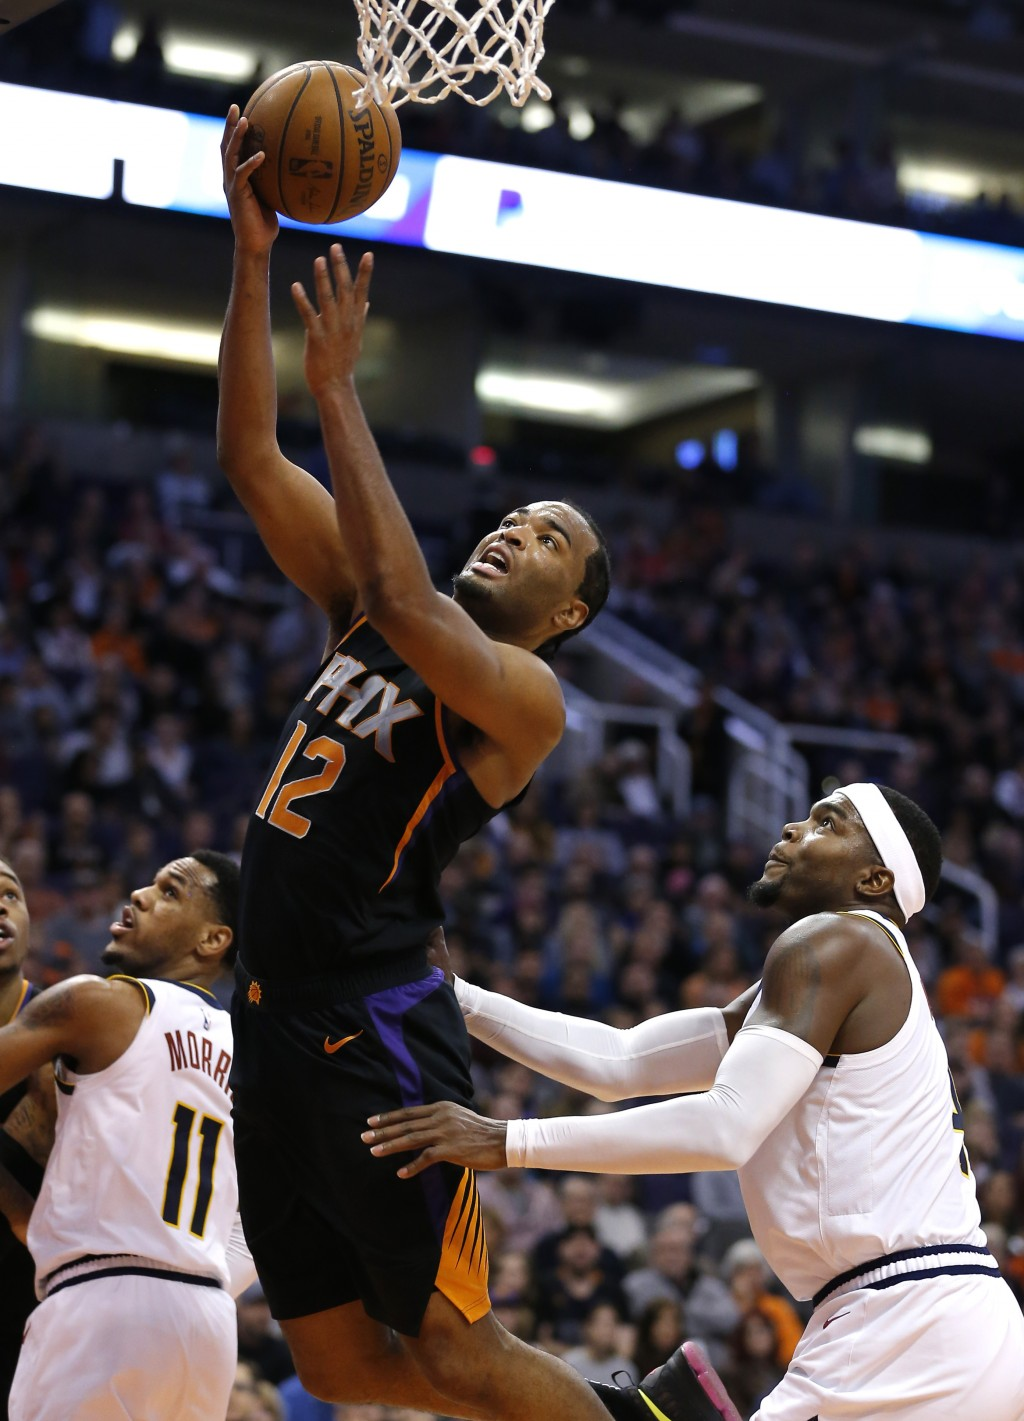 Phoenix Suns forward T.J. Warren (12) drives past Denver Nuggets forward Paul Millsap in the second half during an NBA basketball game, Saturday, Jan.